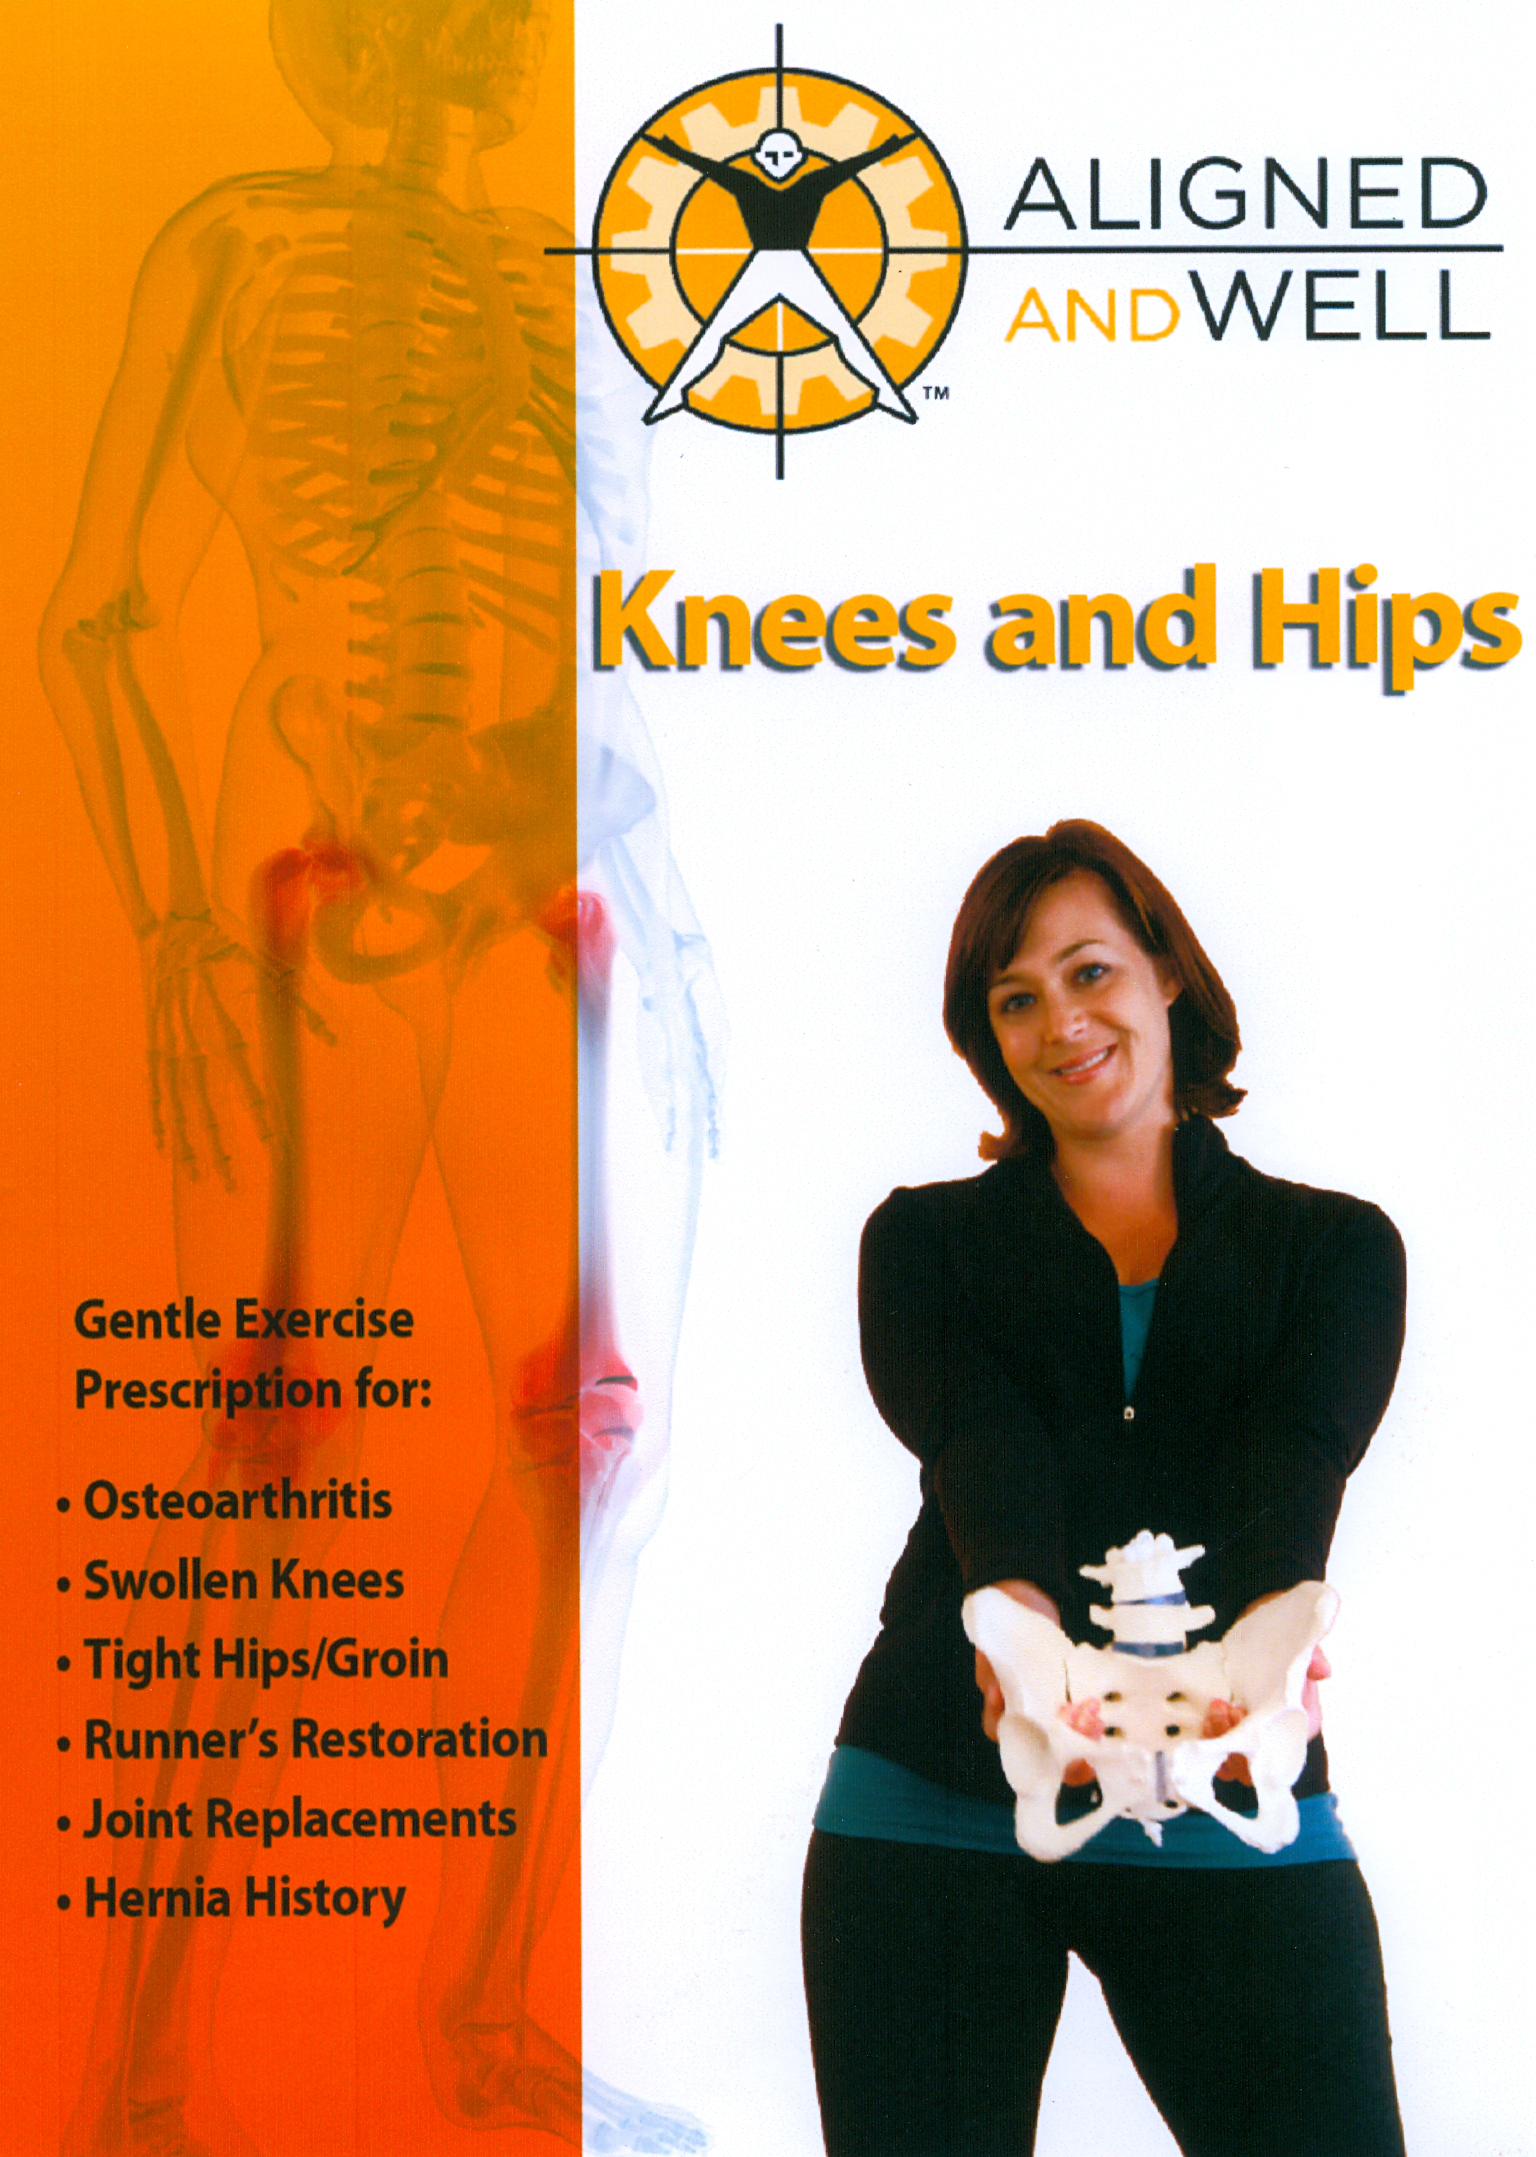 Aligned and Well: Knees and Hips